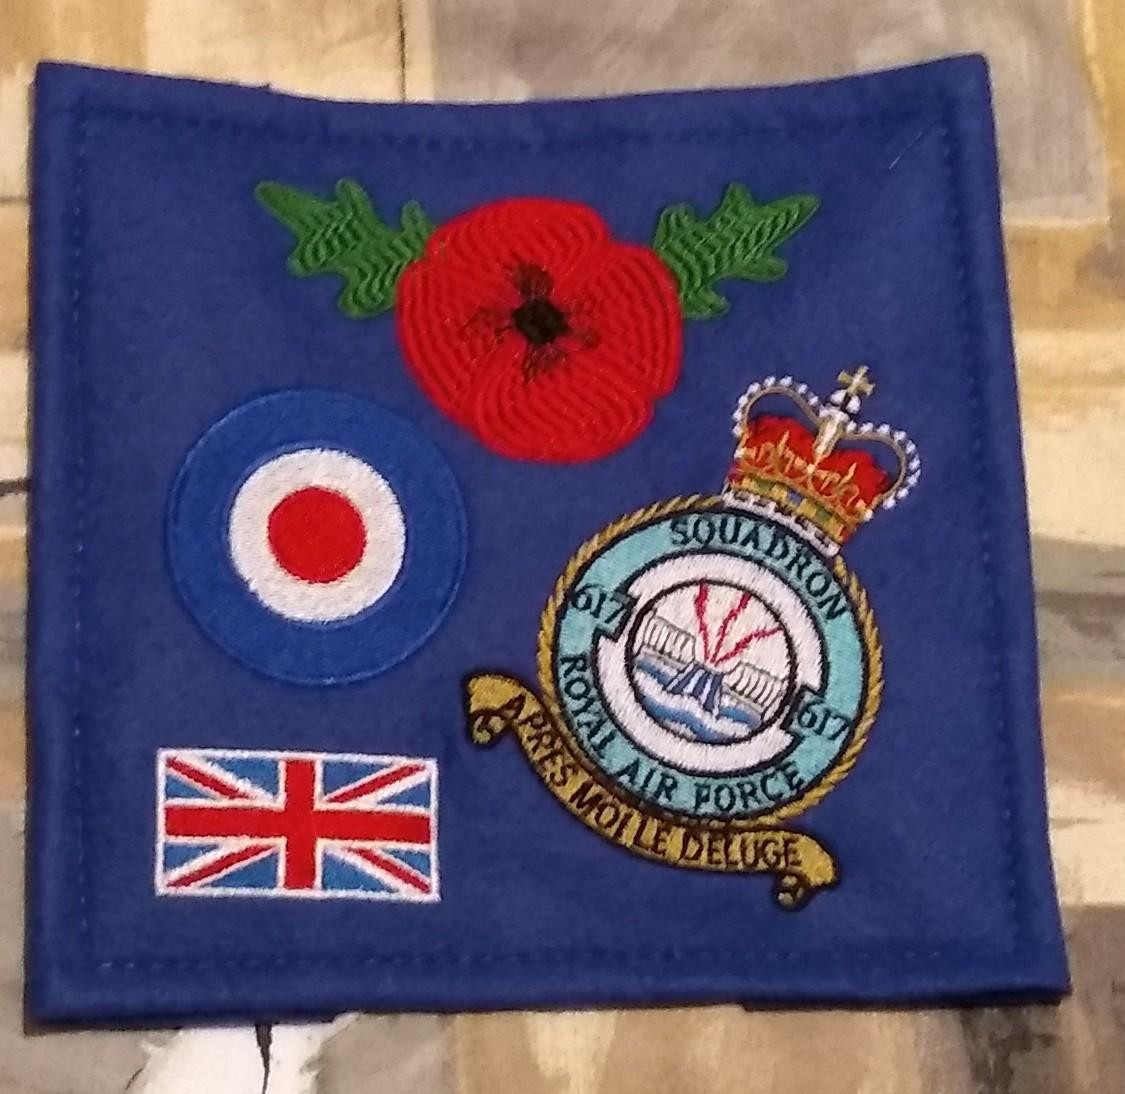 Remembrance Sunday homage